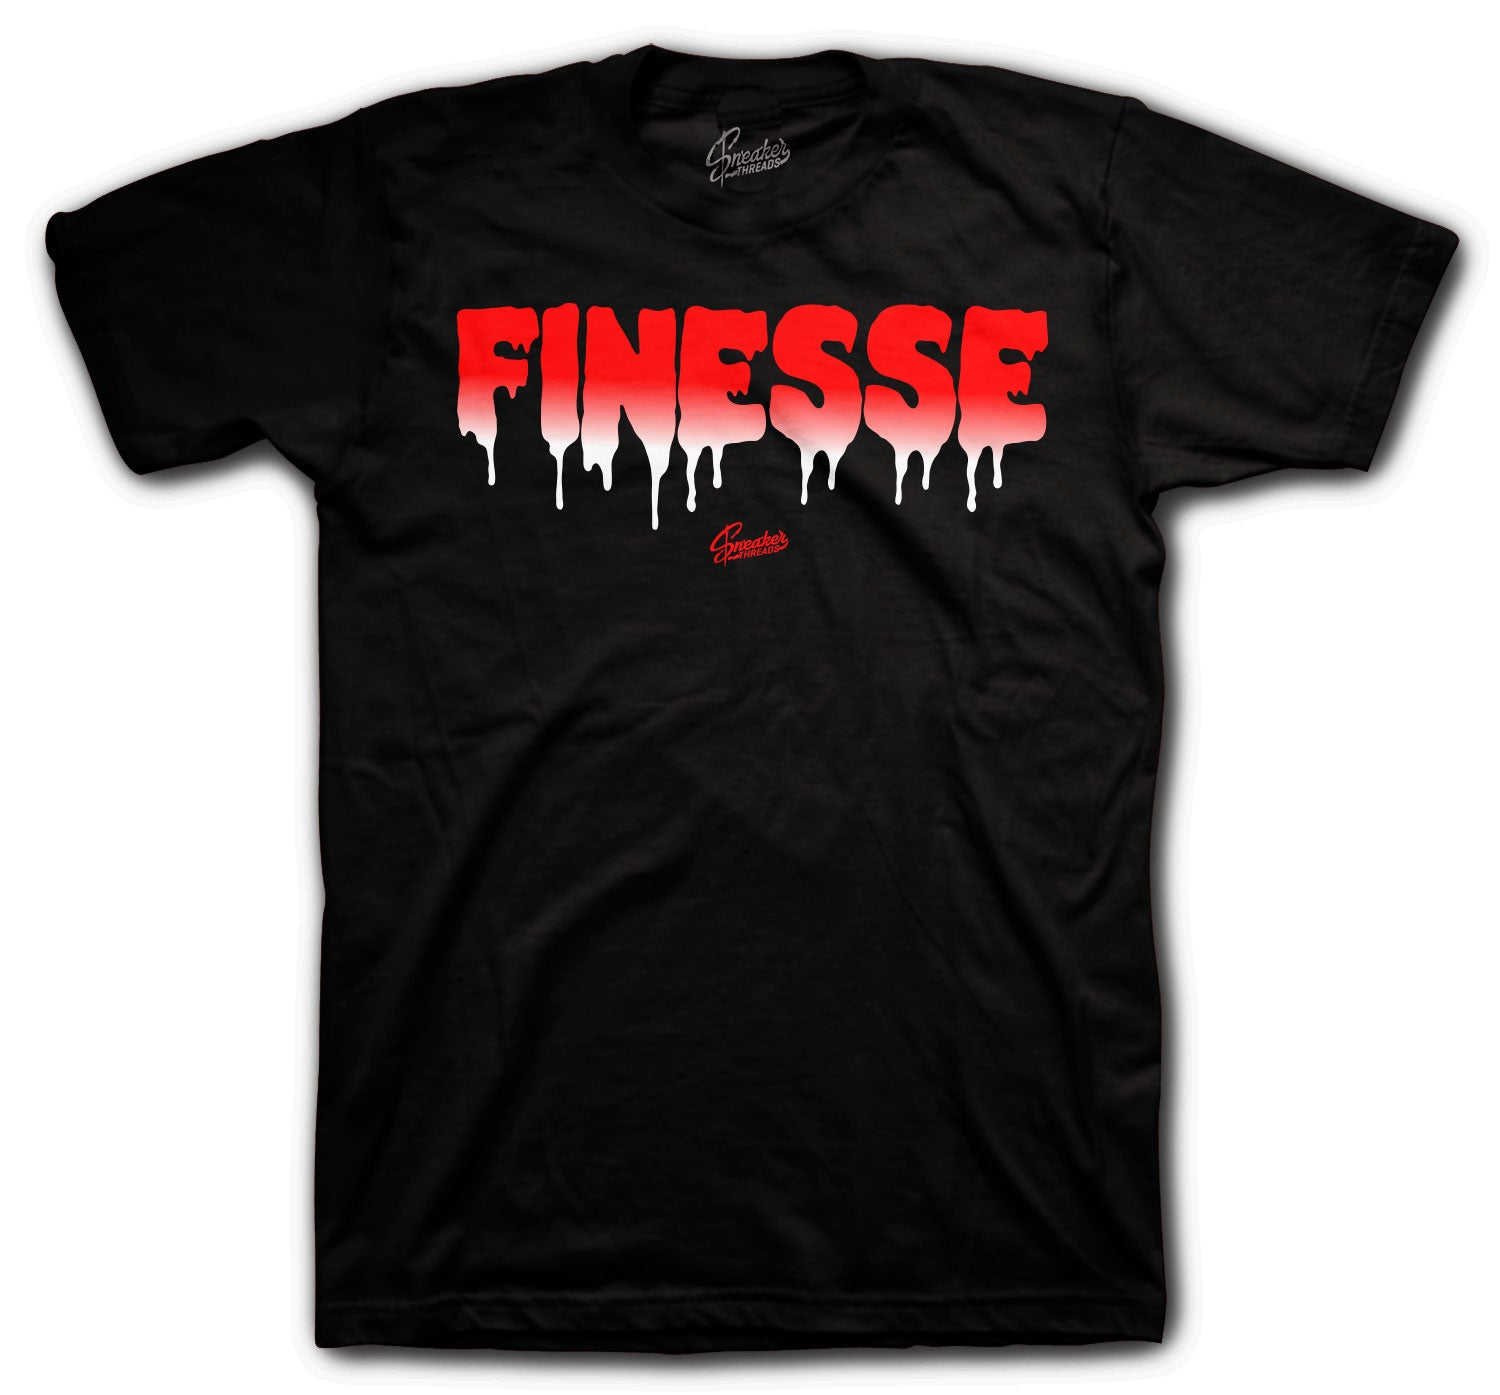 Jordan 11 Low Concord Bred Finesse Shirt